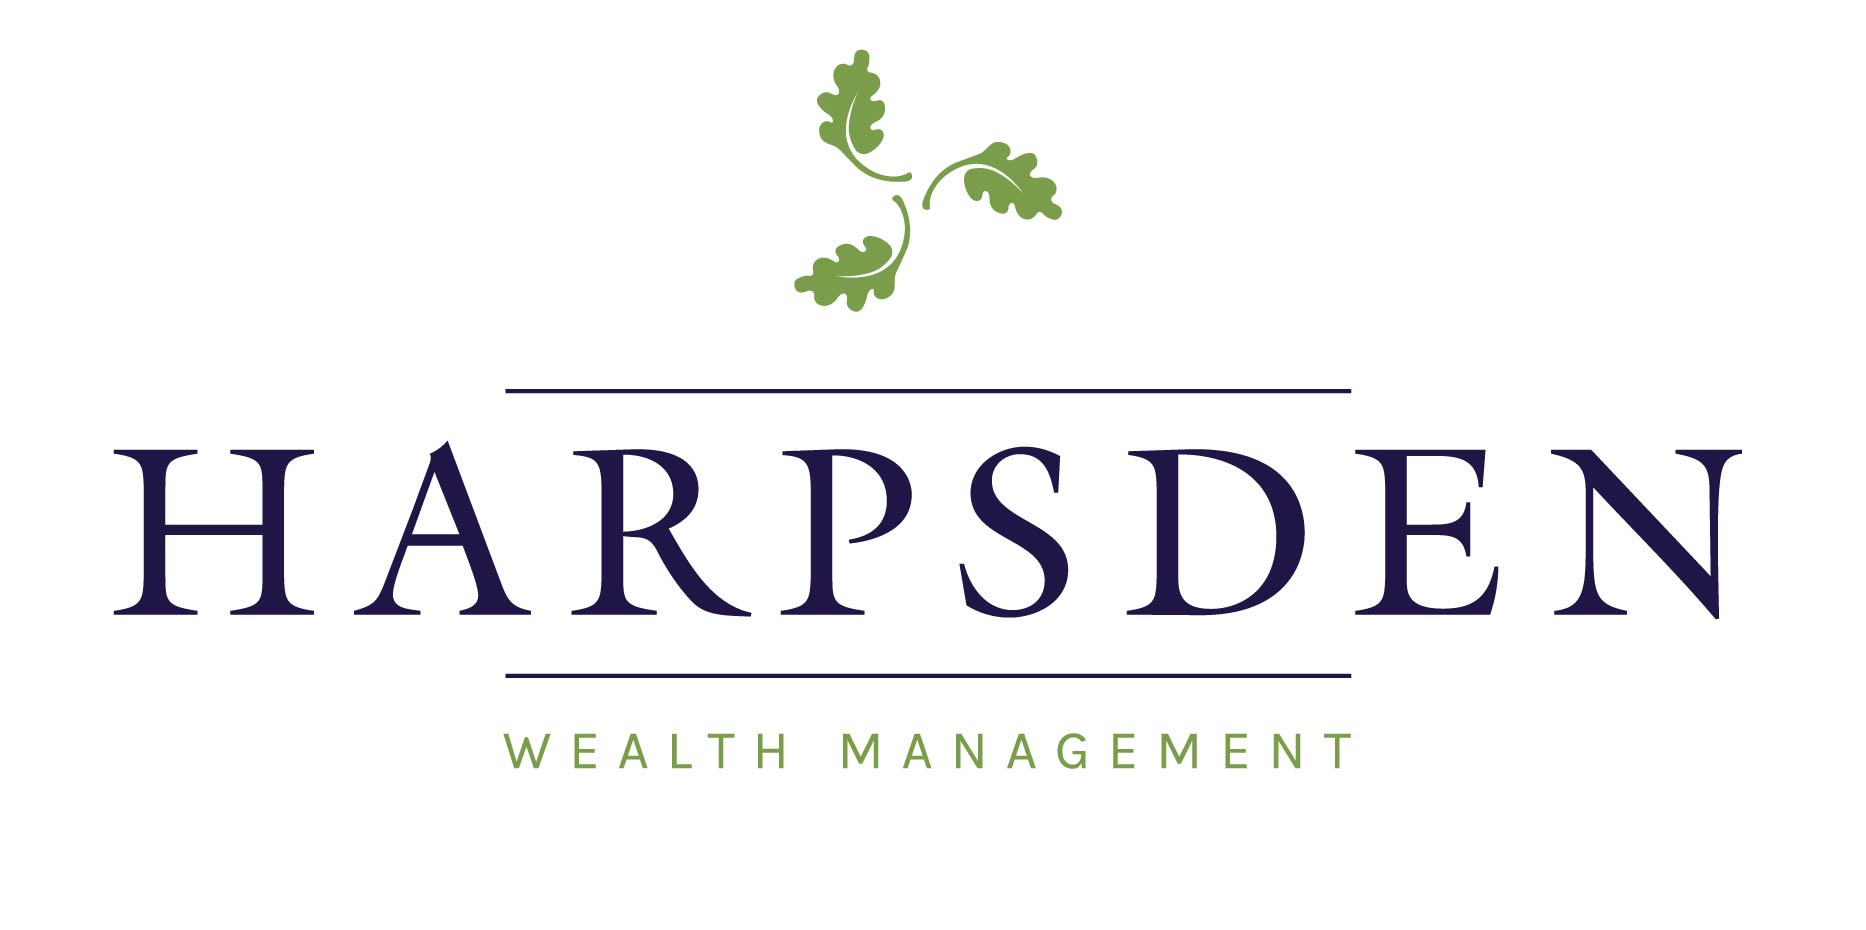 Harpsden Wealth Management - company logo